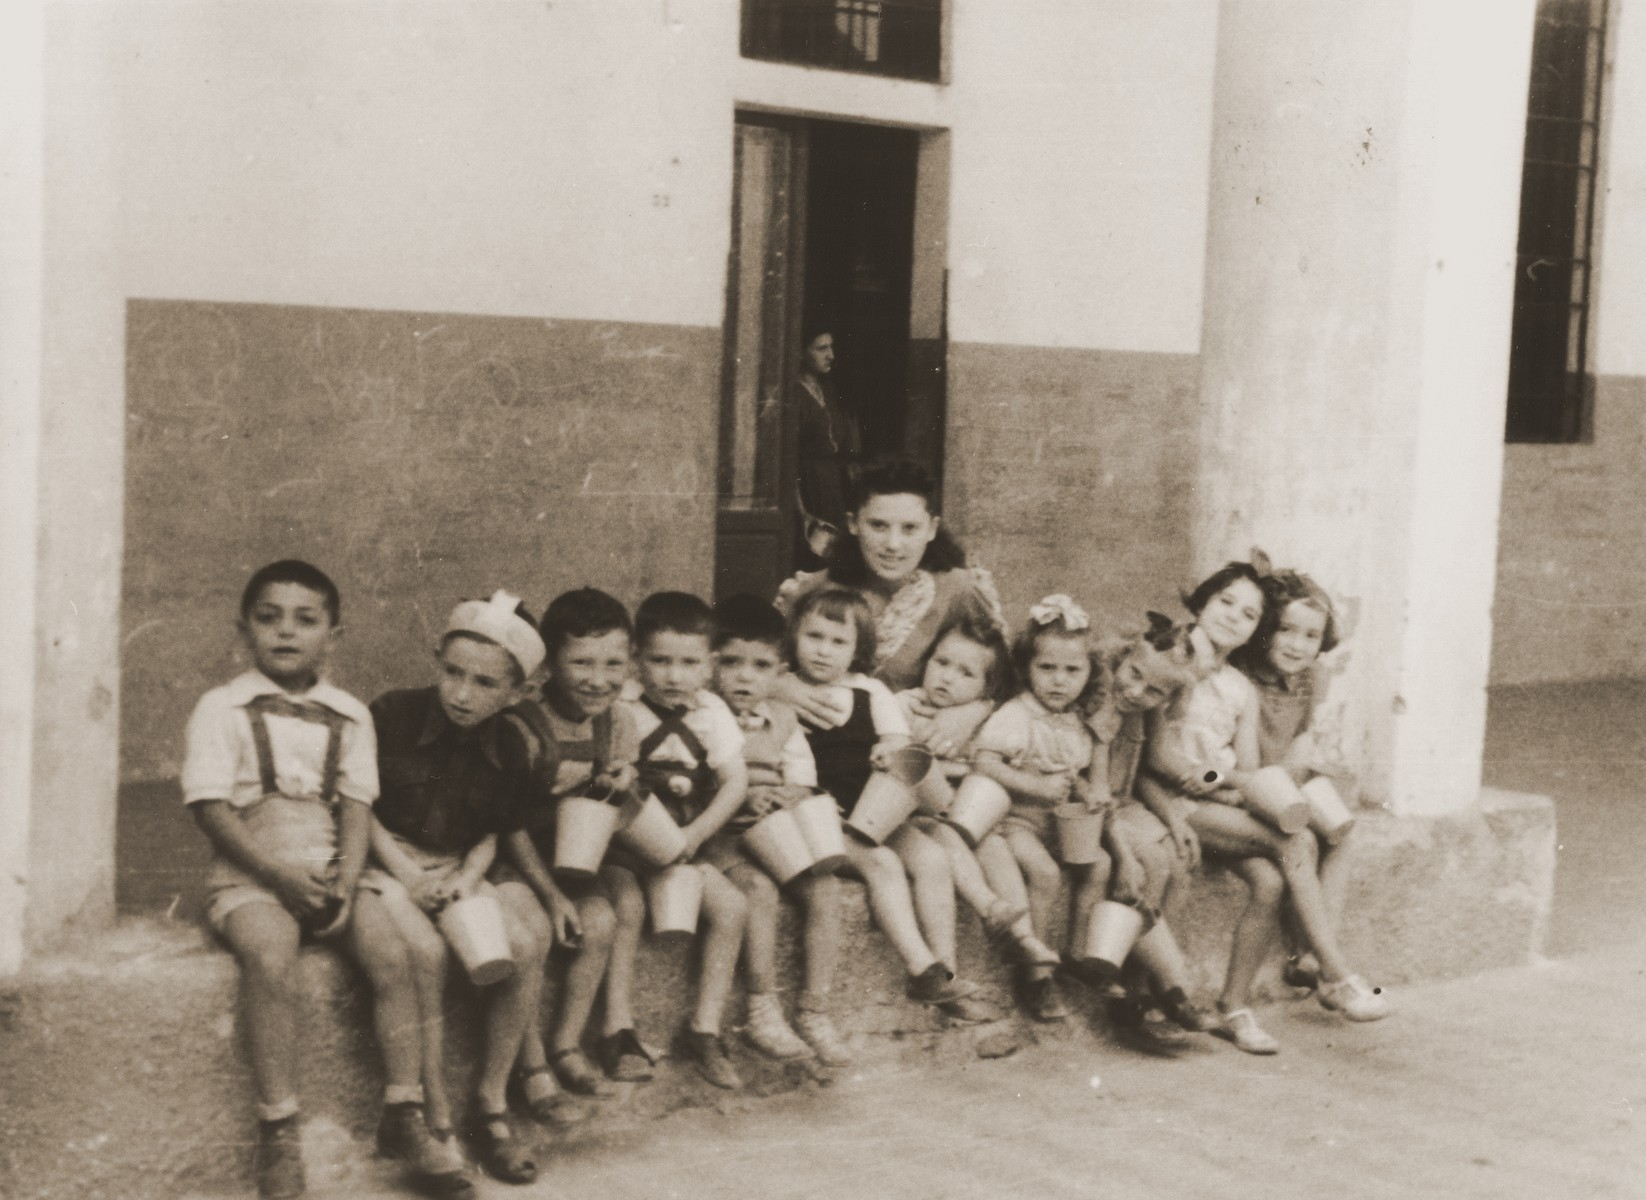 A group of Jewish DP preschool children sit outside a building in the Cremona displaced persons camp.  Among those pictured is Masha Leikach (center, to the left of the teacher).